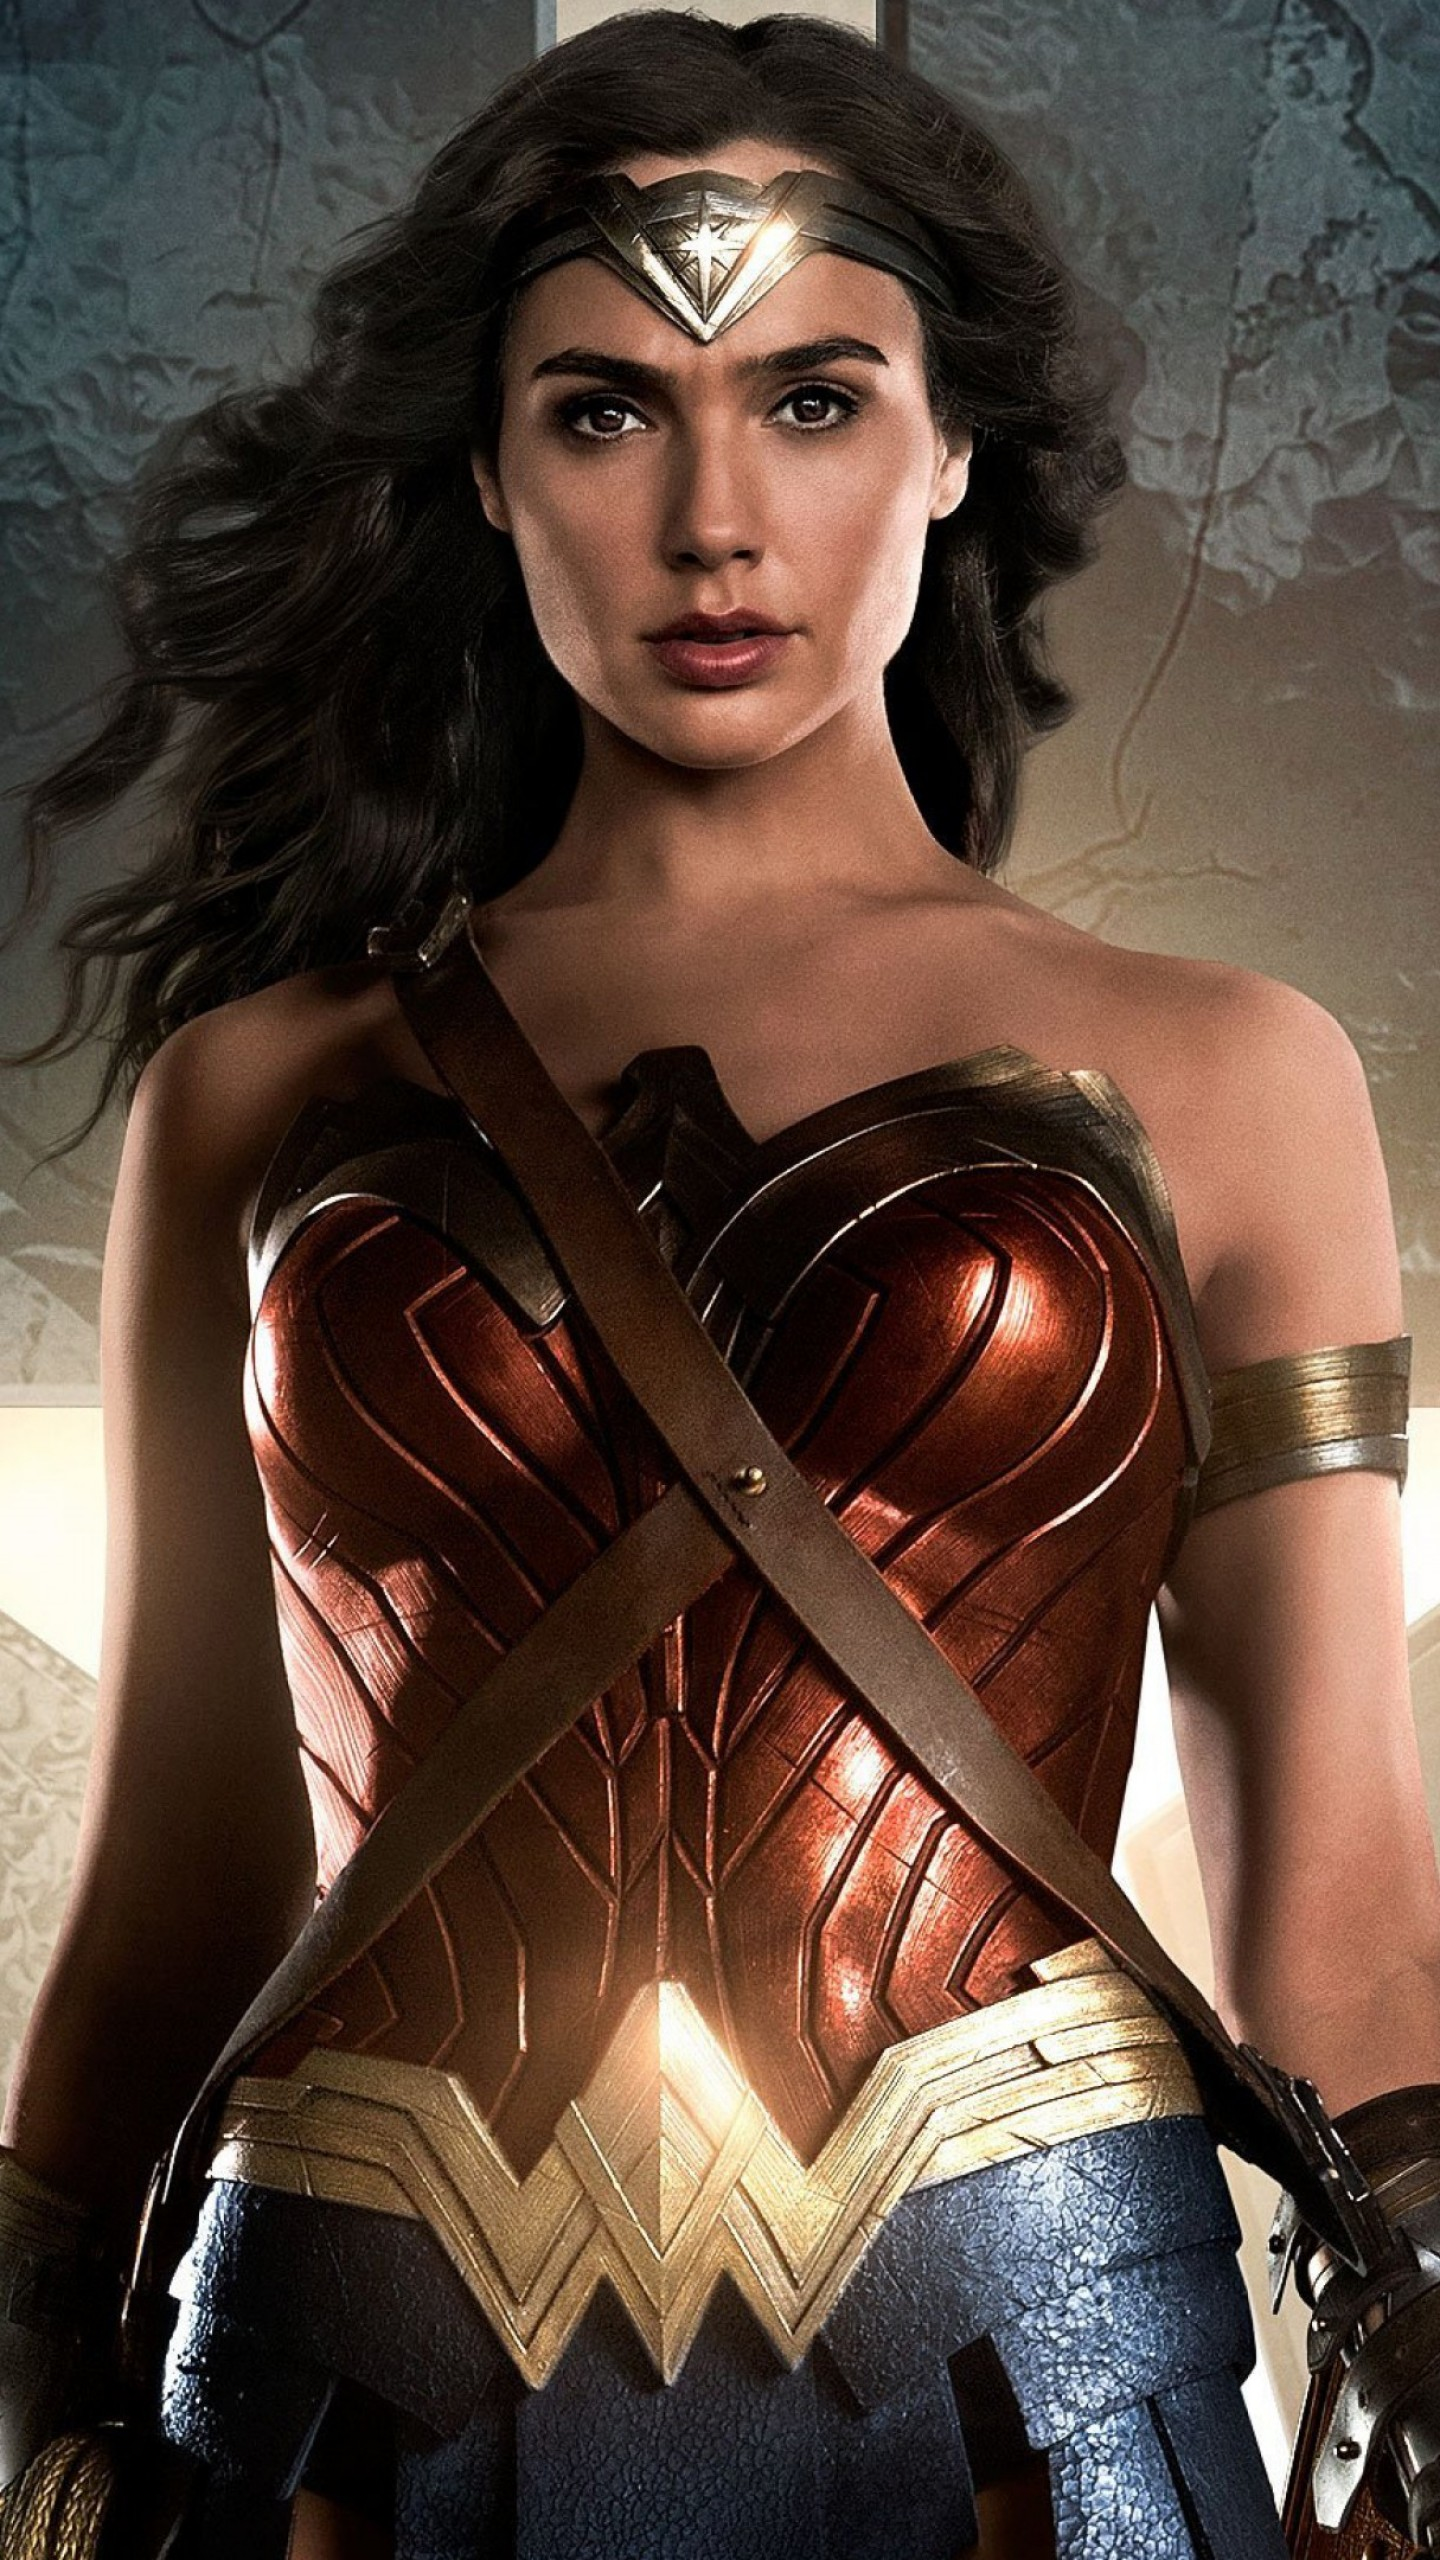 Wallpaper Justice League Wonder Woman Gal Gadot 4k Movies 15011